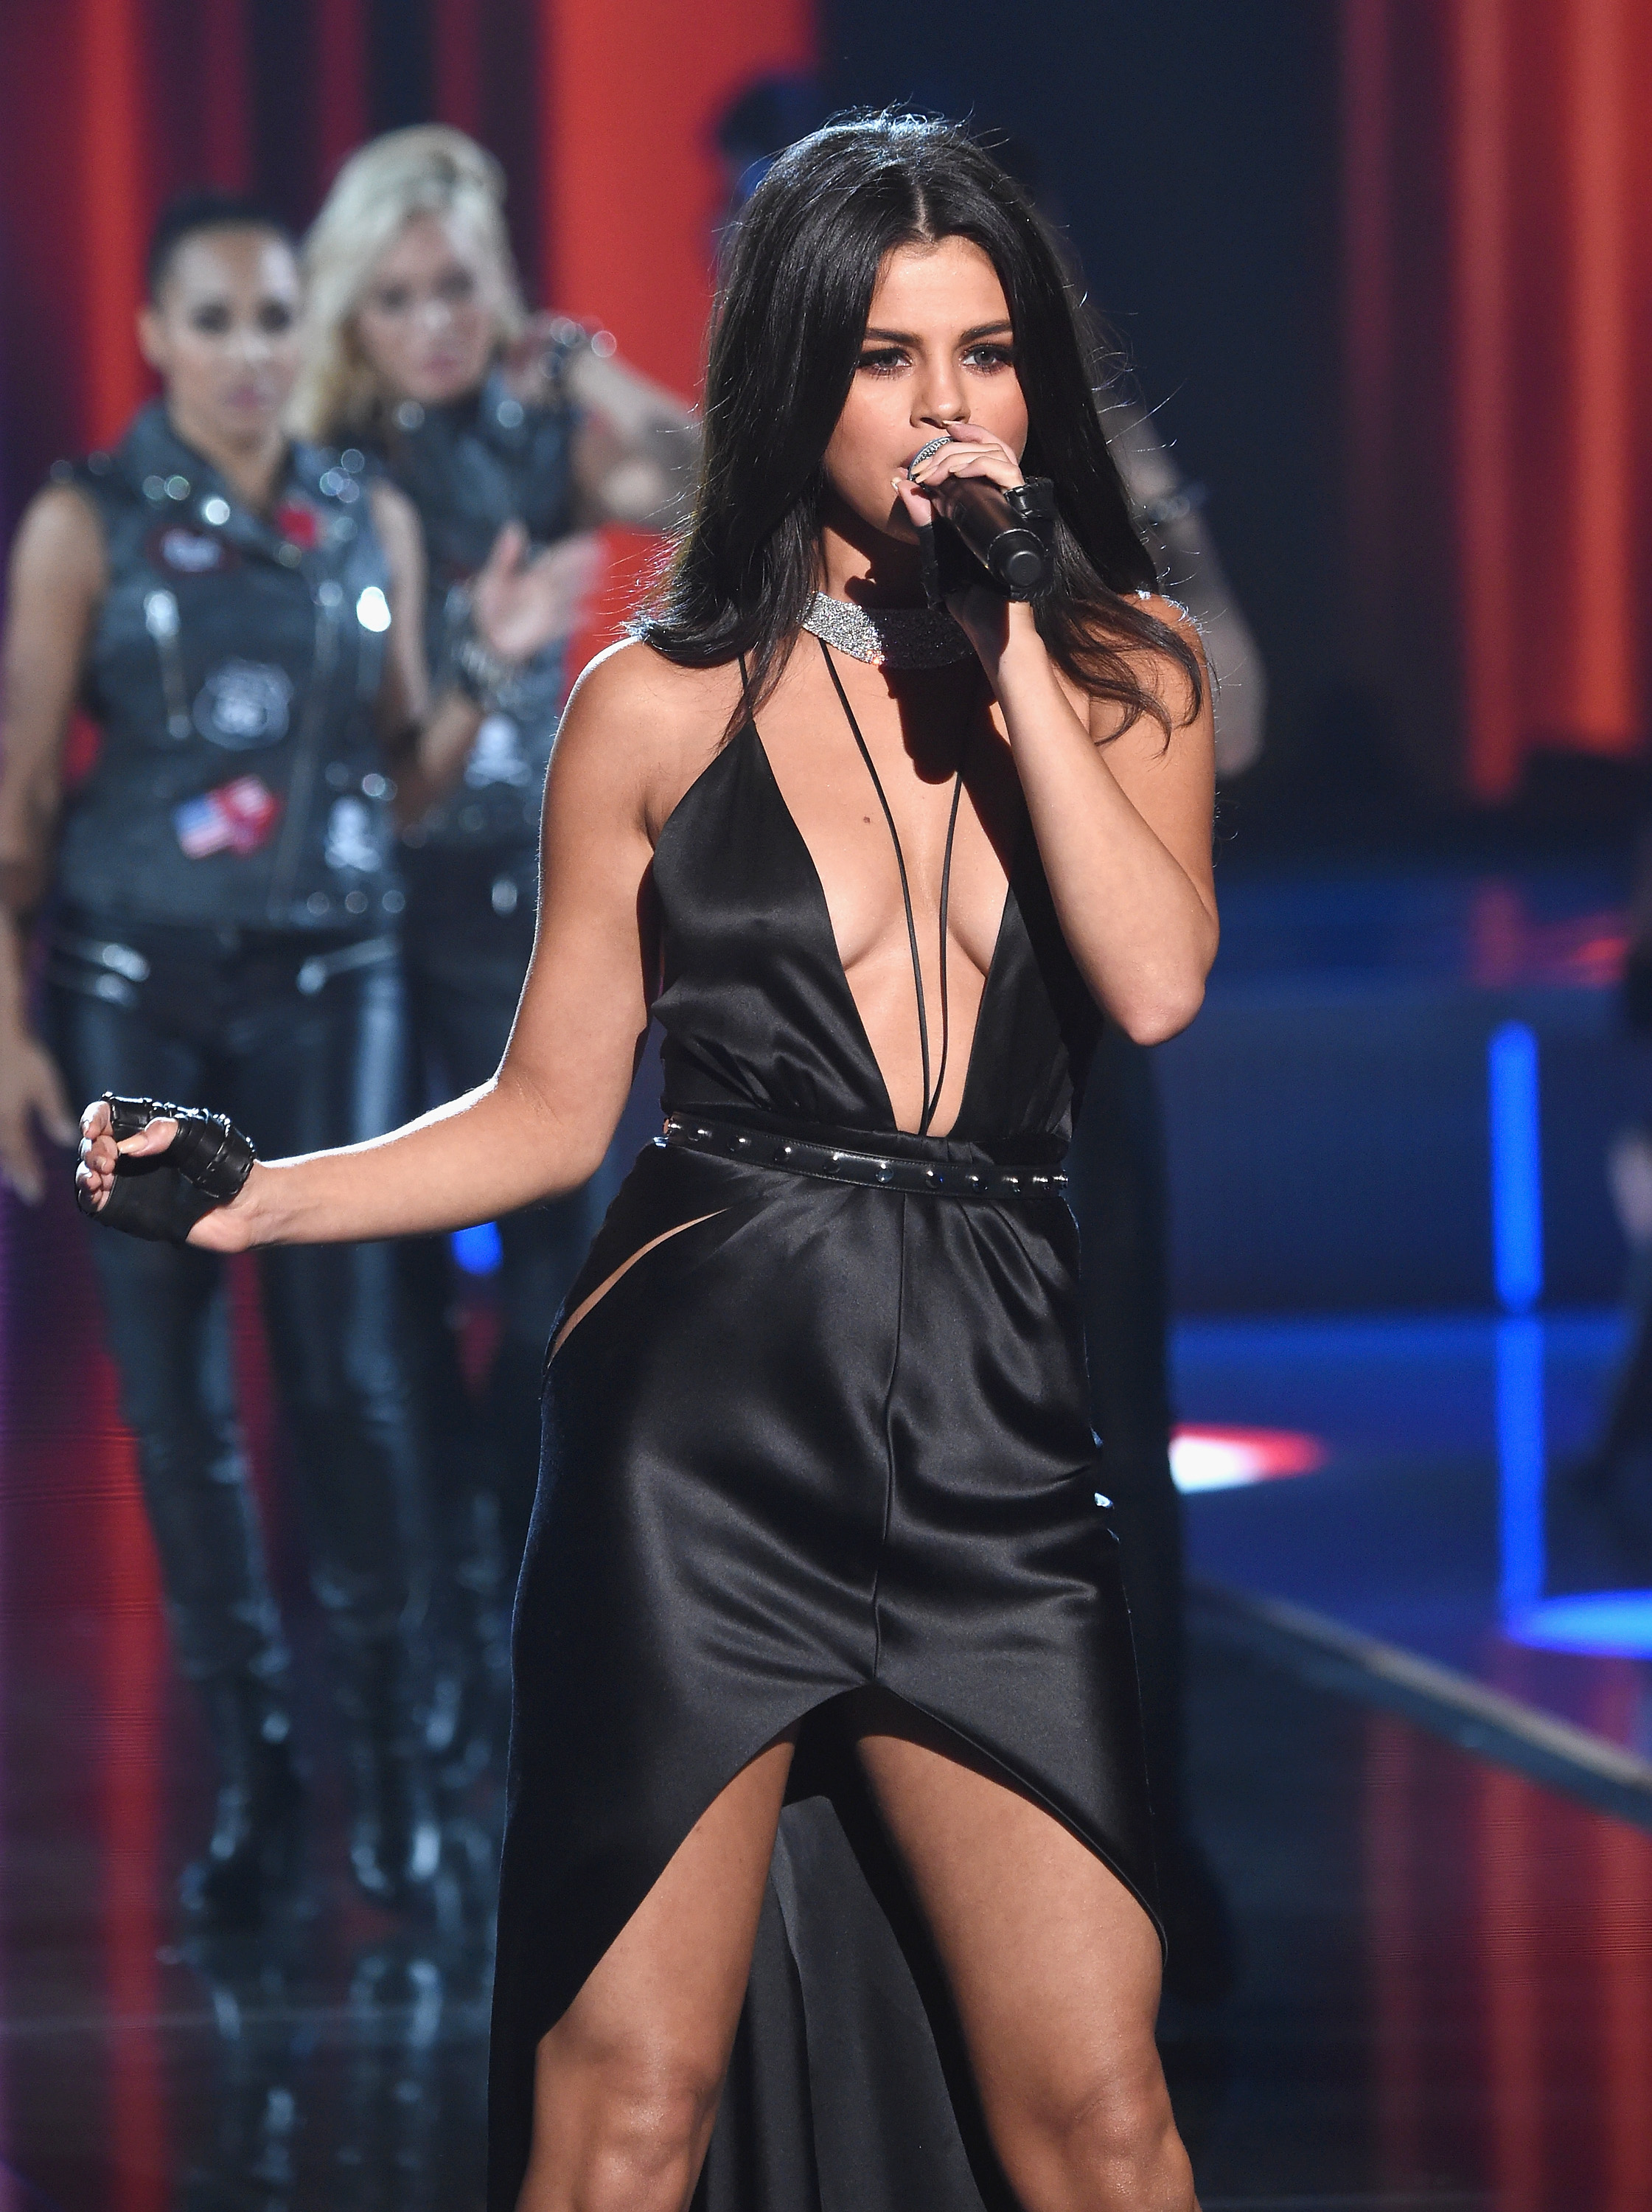 Selena Gomez Performed At The Victoria S Secret Fashion Show Her